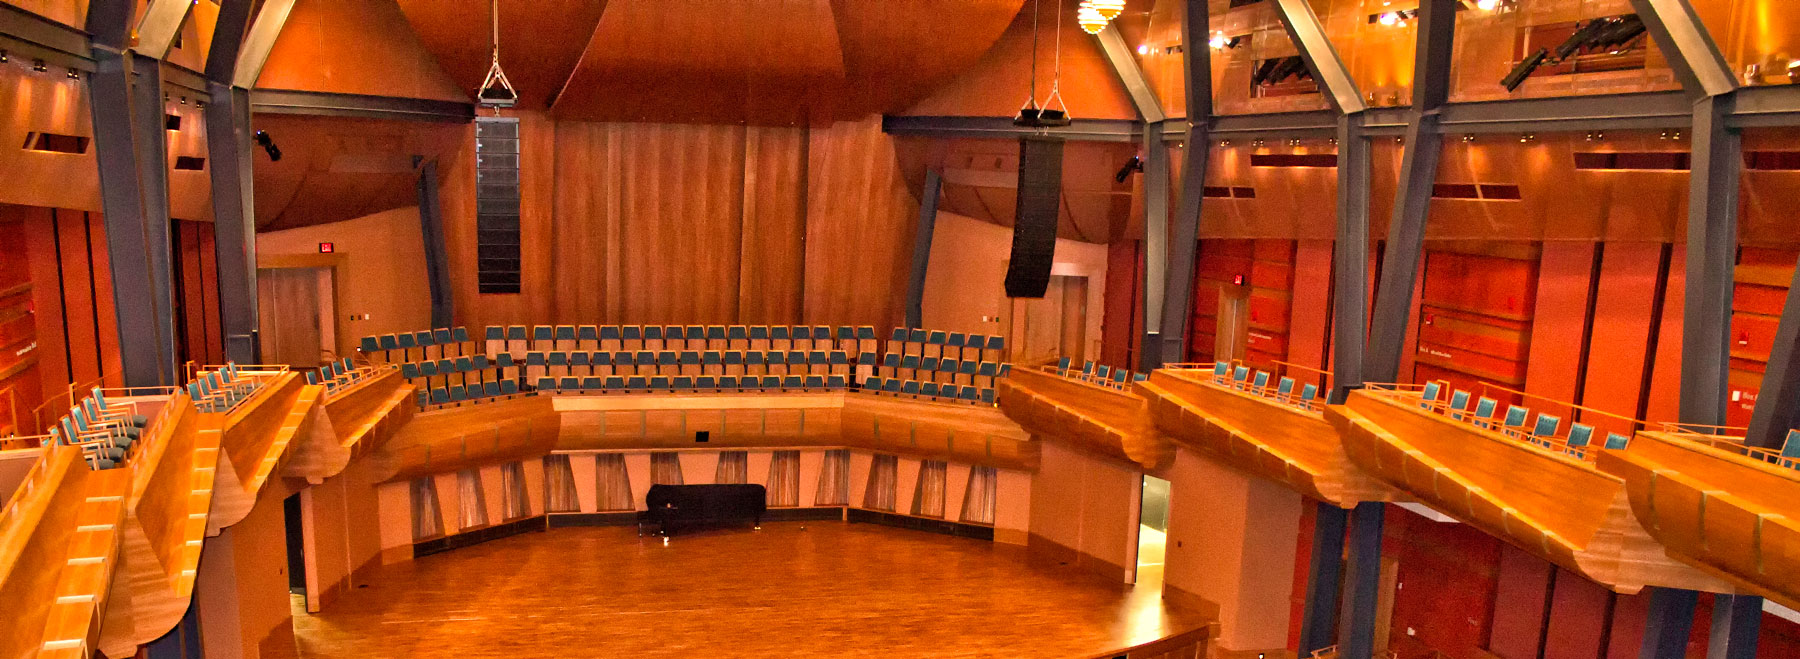 The Bella Concert Hall